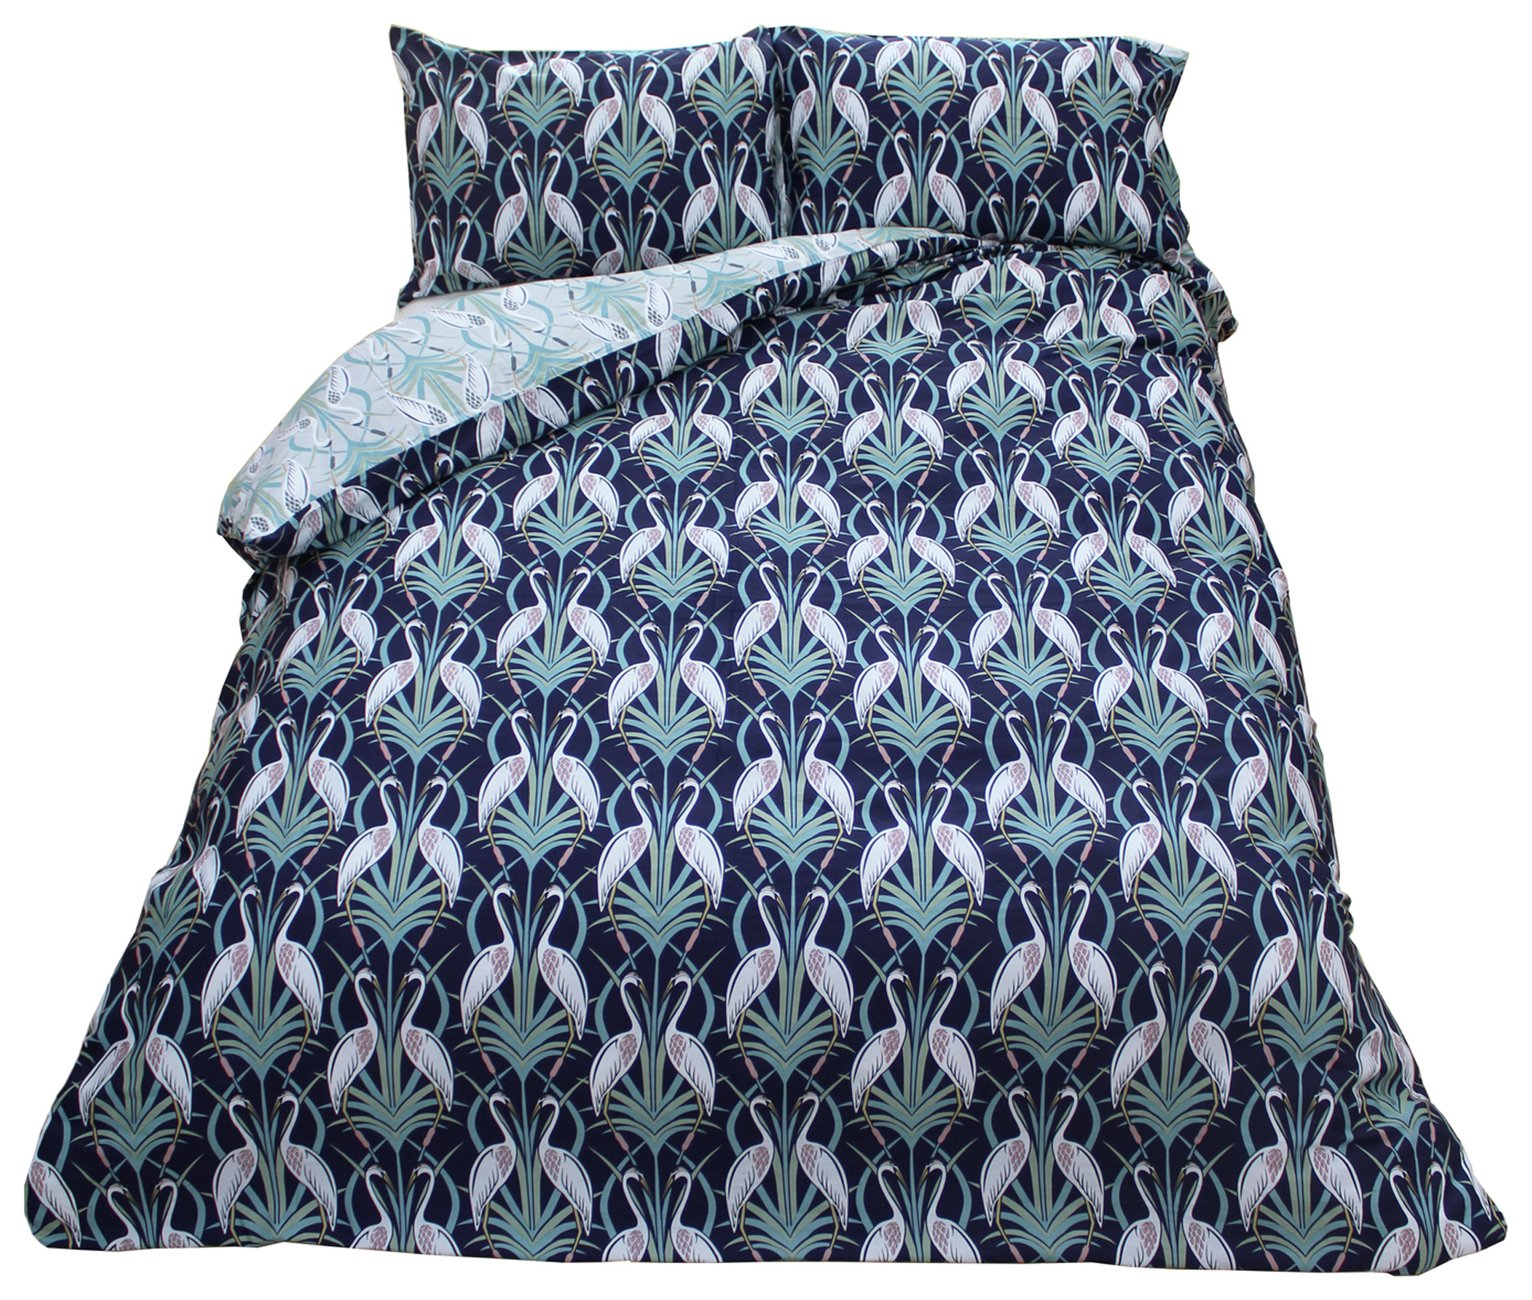 The Chateau by Angel Strawbridge Heron Bedding Set Superking